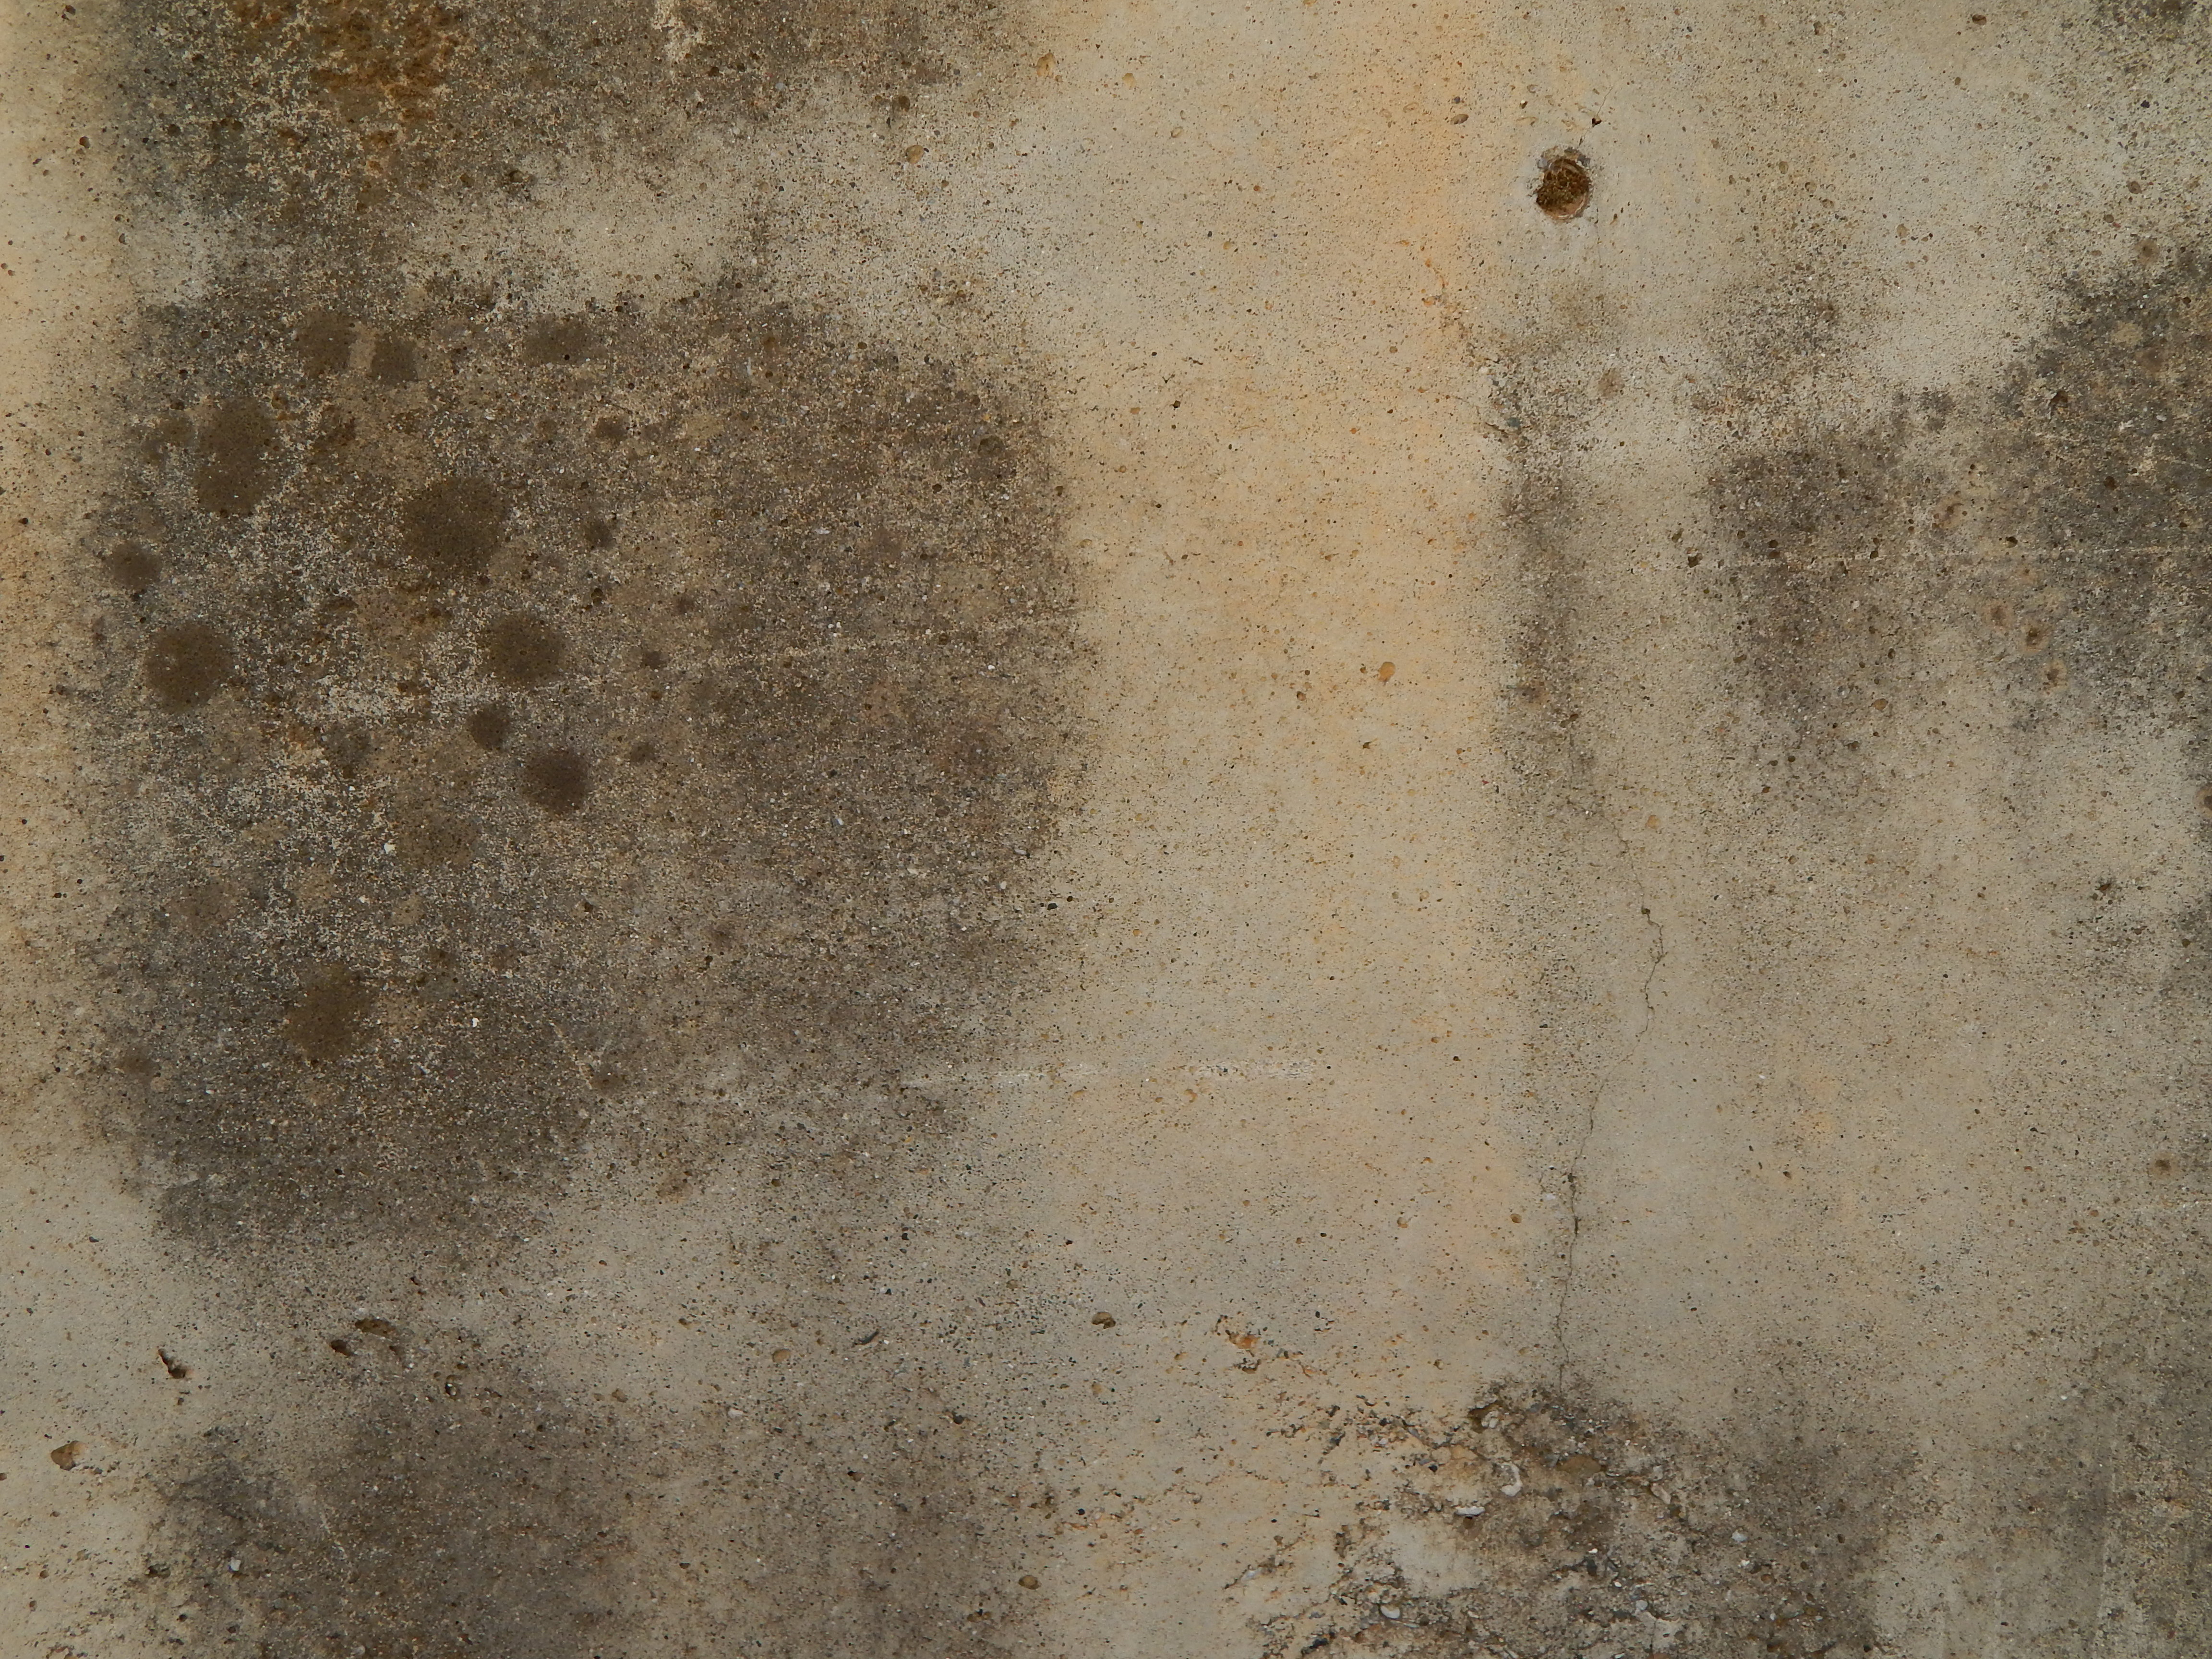 Top 5 Best Mold Removal Companies in Athens, AL